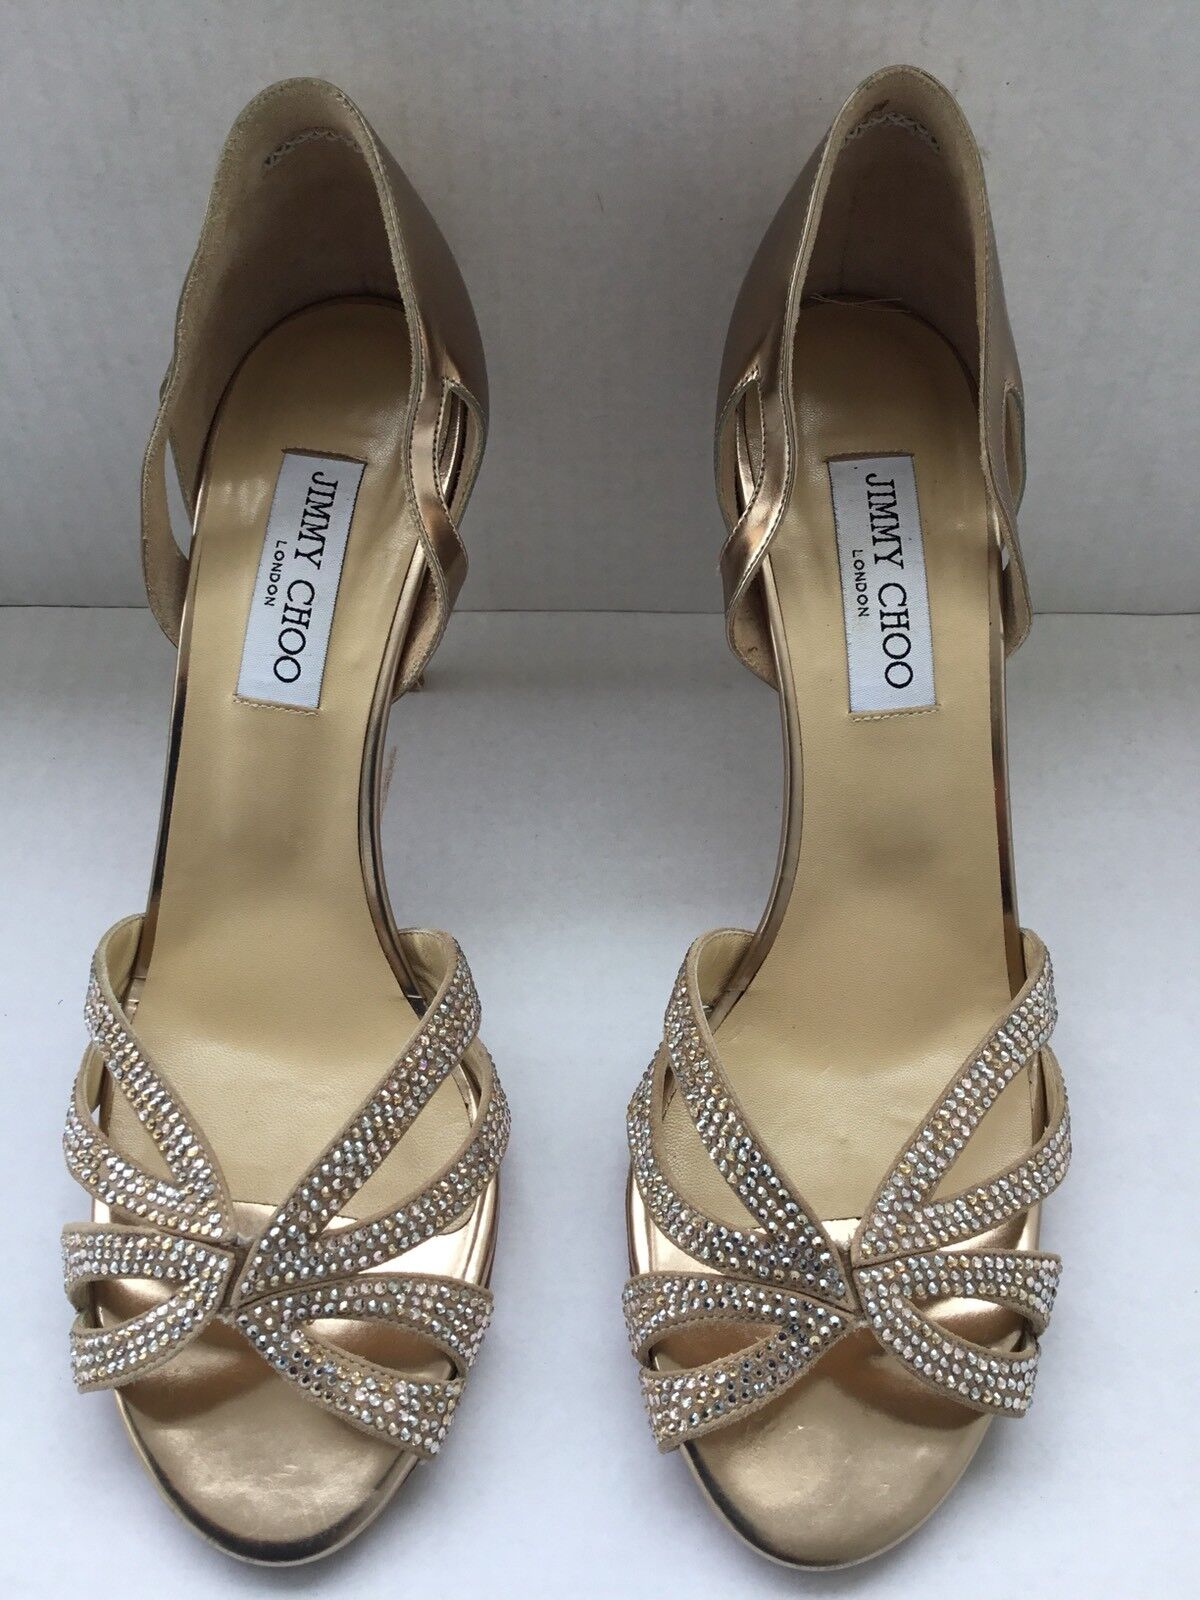 Jimmi Choo Womans Evening shoes  .Sz 41 Made in